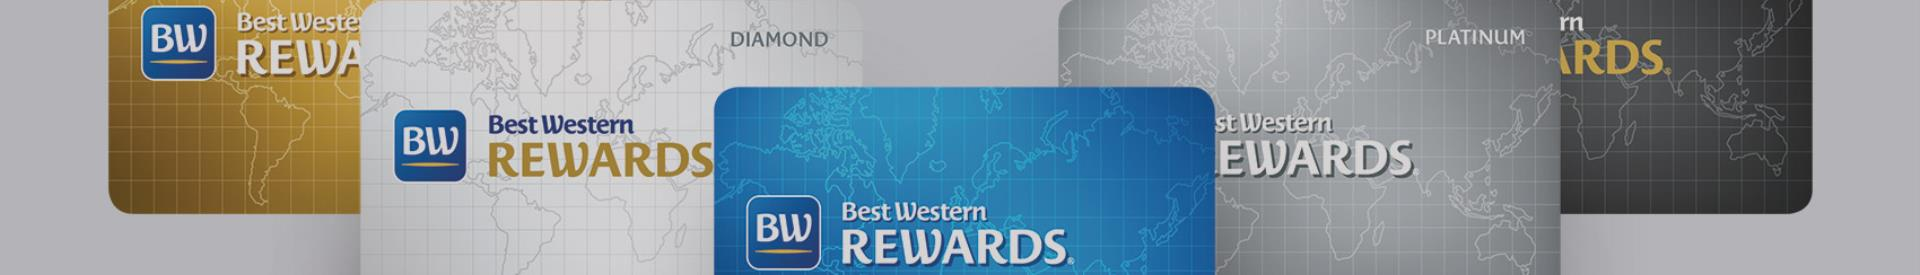 Bw Rewards-Hotel Universo Rome